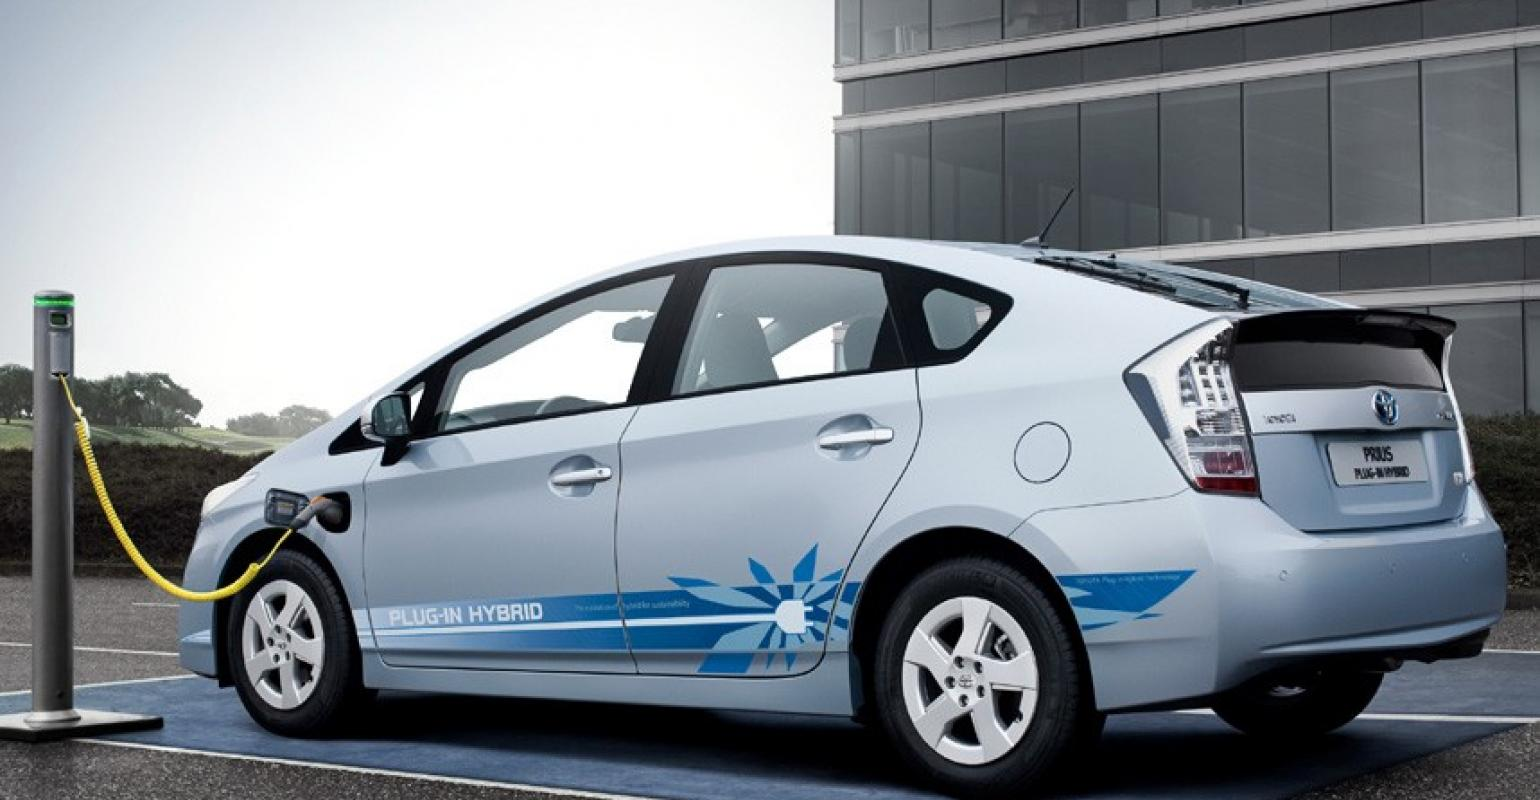 U K  Extends Subsidies for Buyers of Greenest Cars | WardsAuto